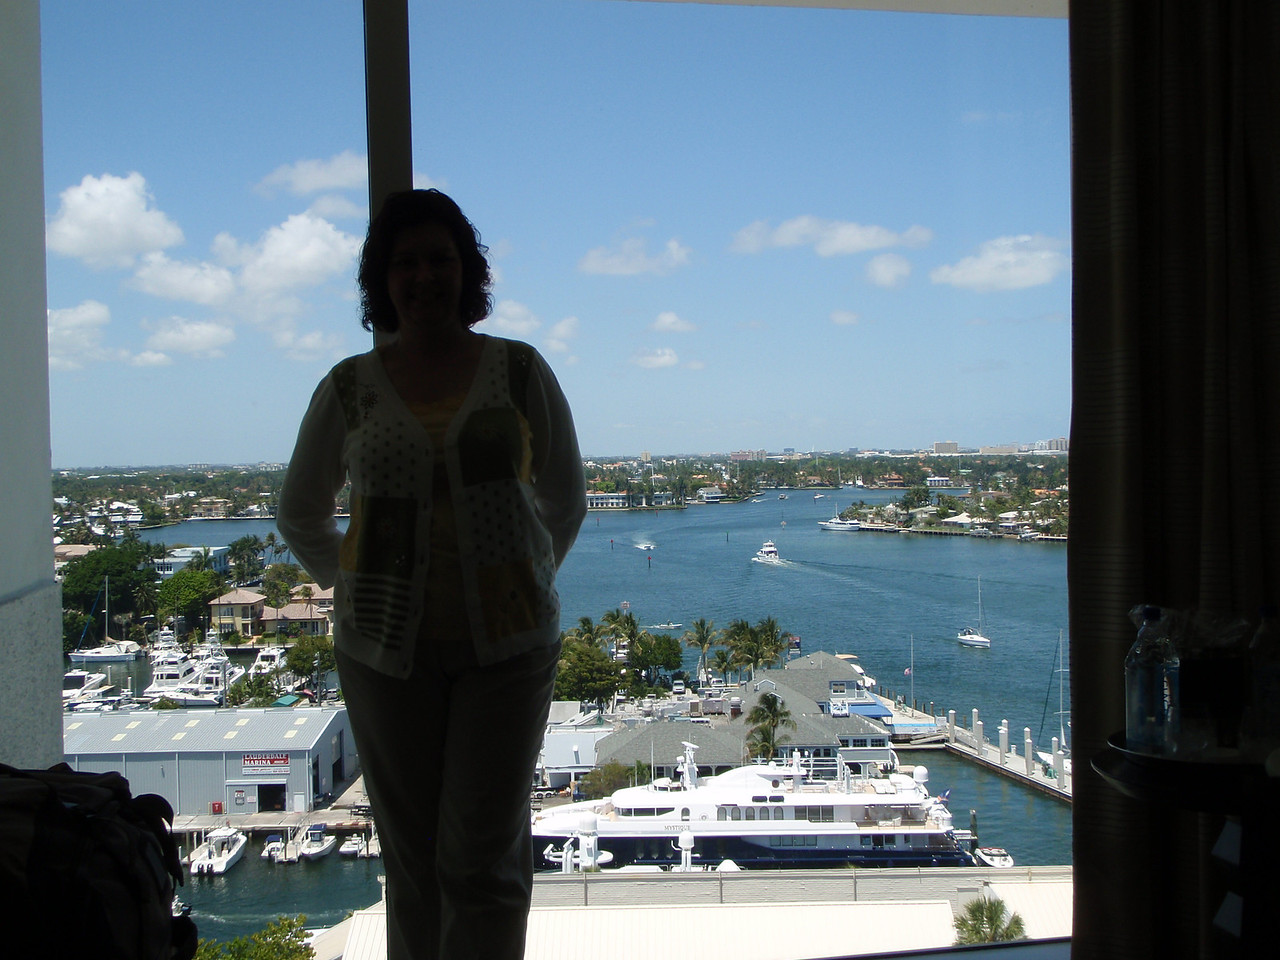 It is the first day of our Caribbean Adventure and we've arrived at the Hilton Fort Lauderdale Marina.  We were upgraded to the best suite in the hotel.  The views were fabulous.